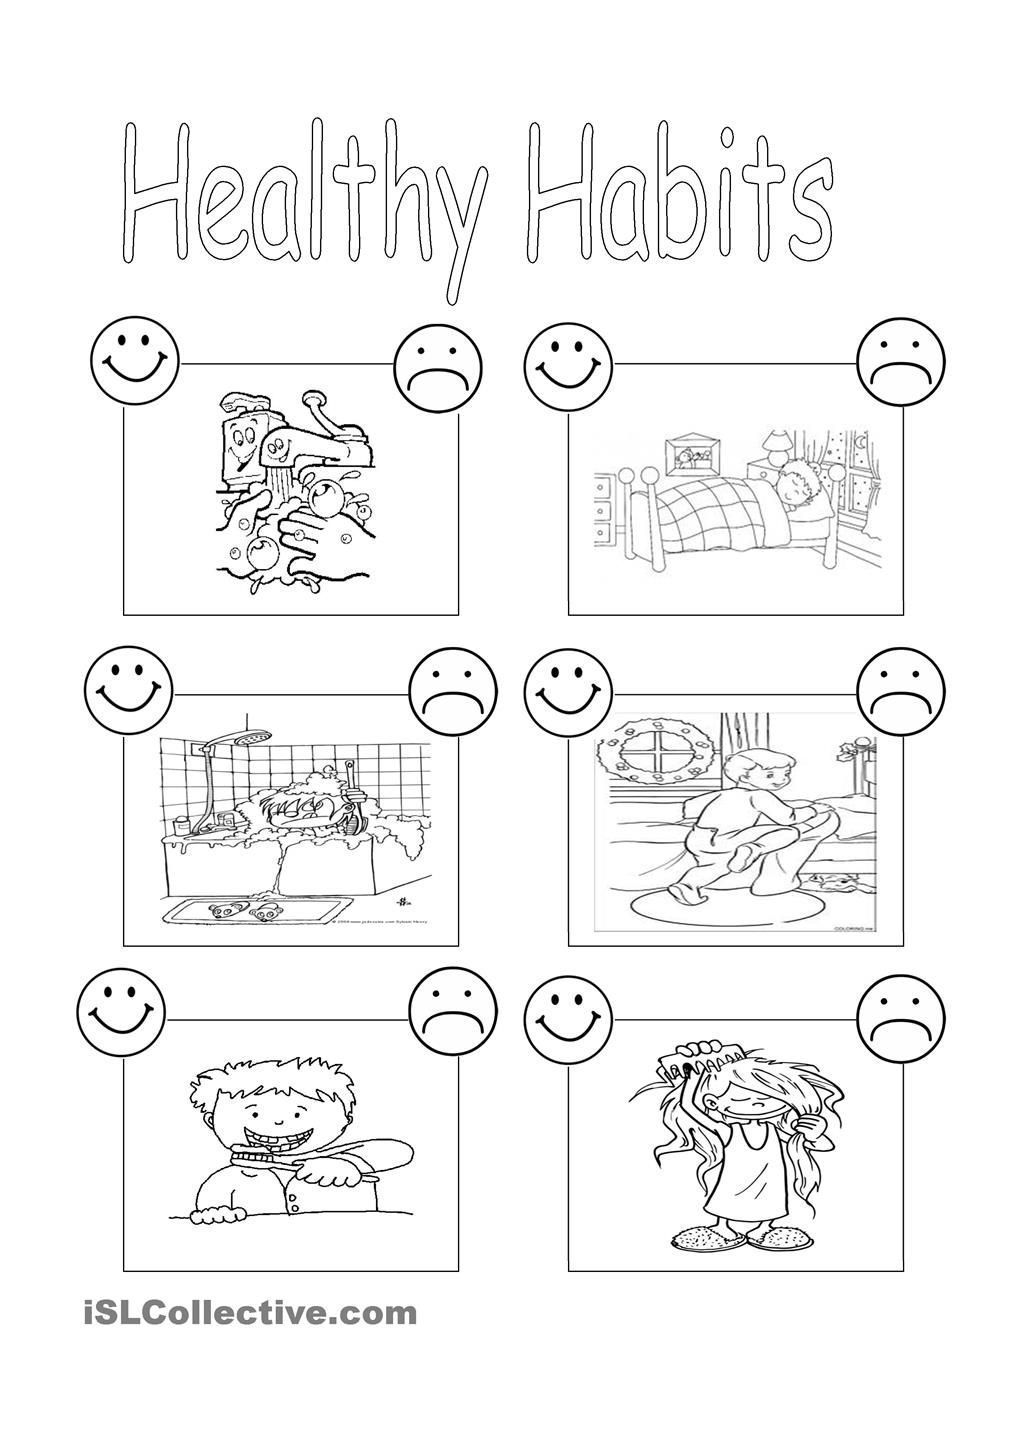 Healthy habits Healthy habits for kids, Good habits for